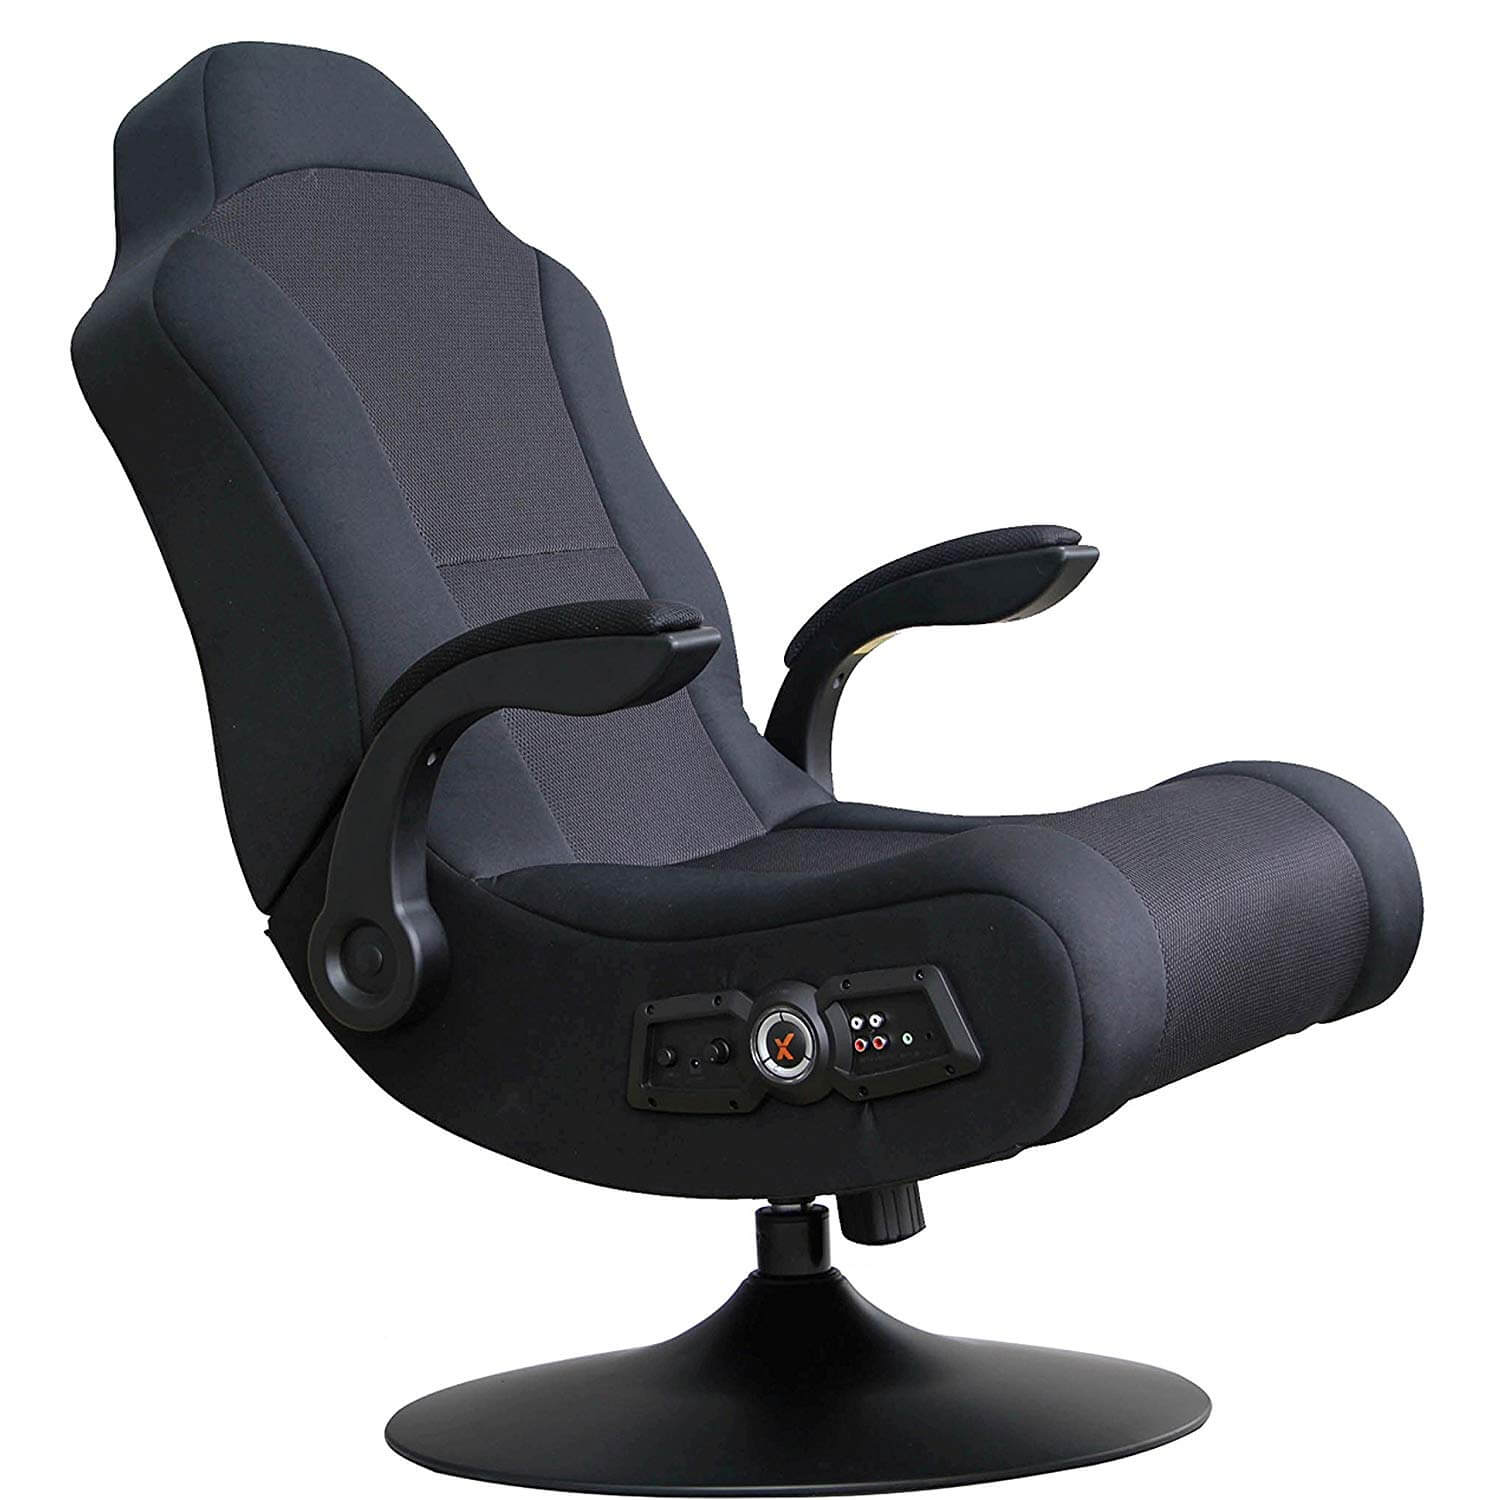 impact x rocker chair drive fly weight transport parts best gaming chairs buyer guide reviews 5142201 commander 2 1 audio